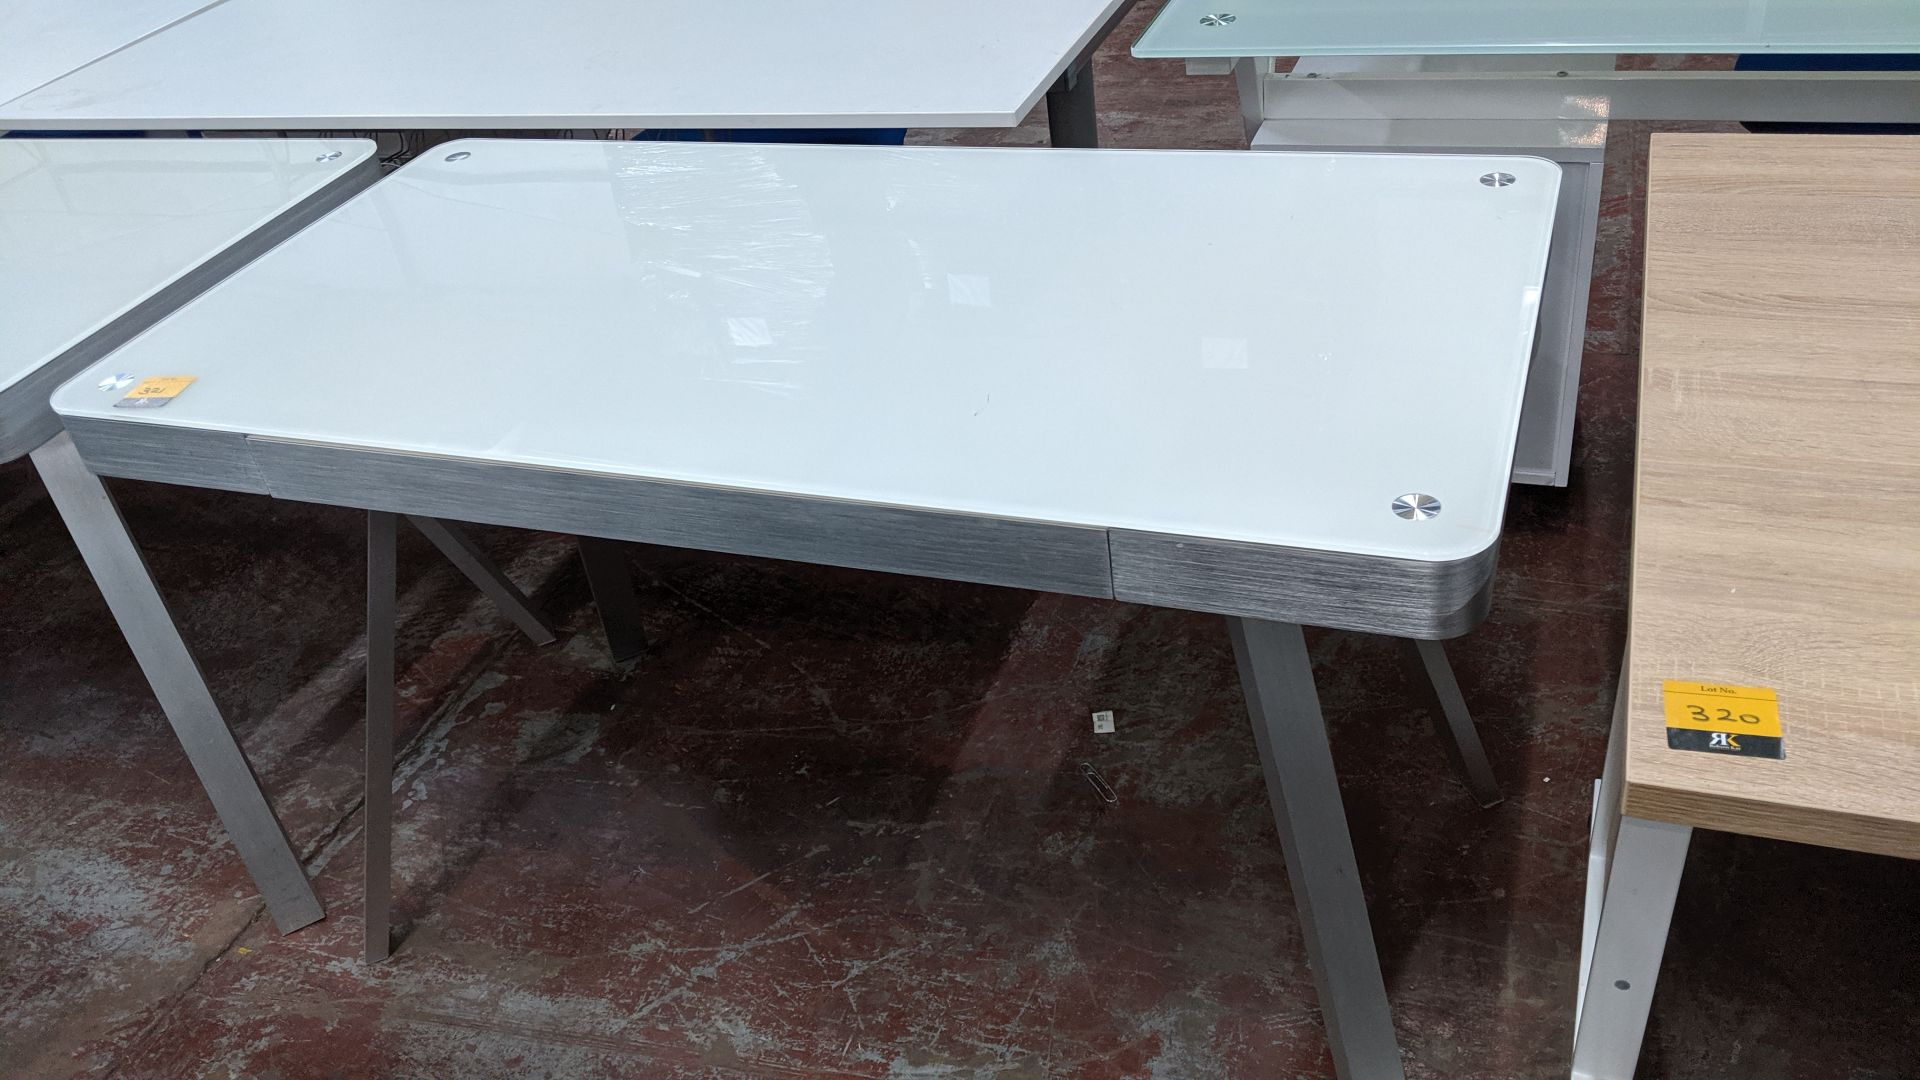 Lot 321 - Pair of matching modern glass & silver metal desks. This is one of a large number of lots used/owned